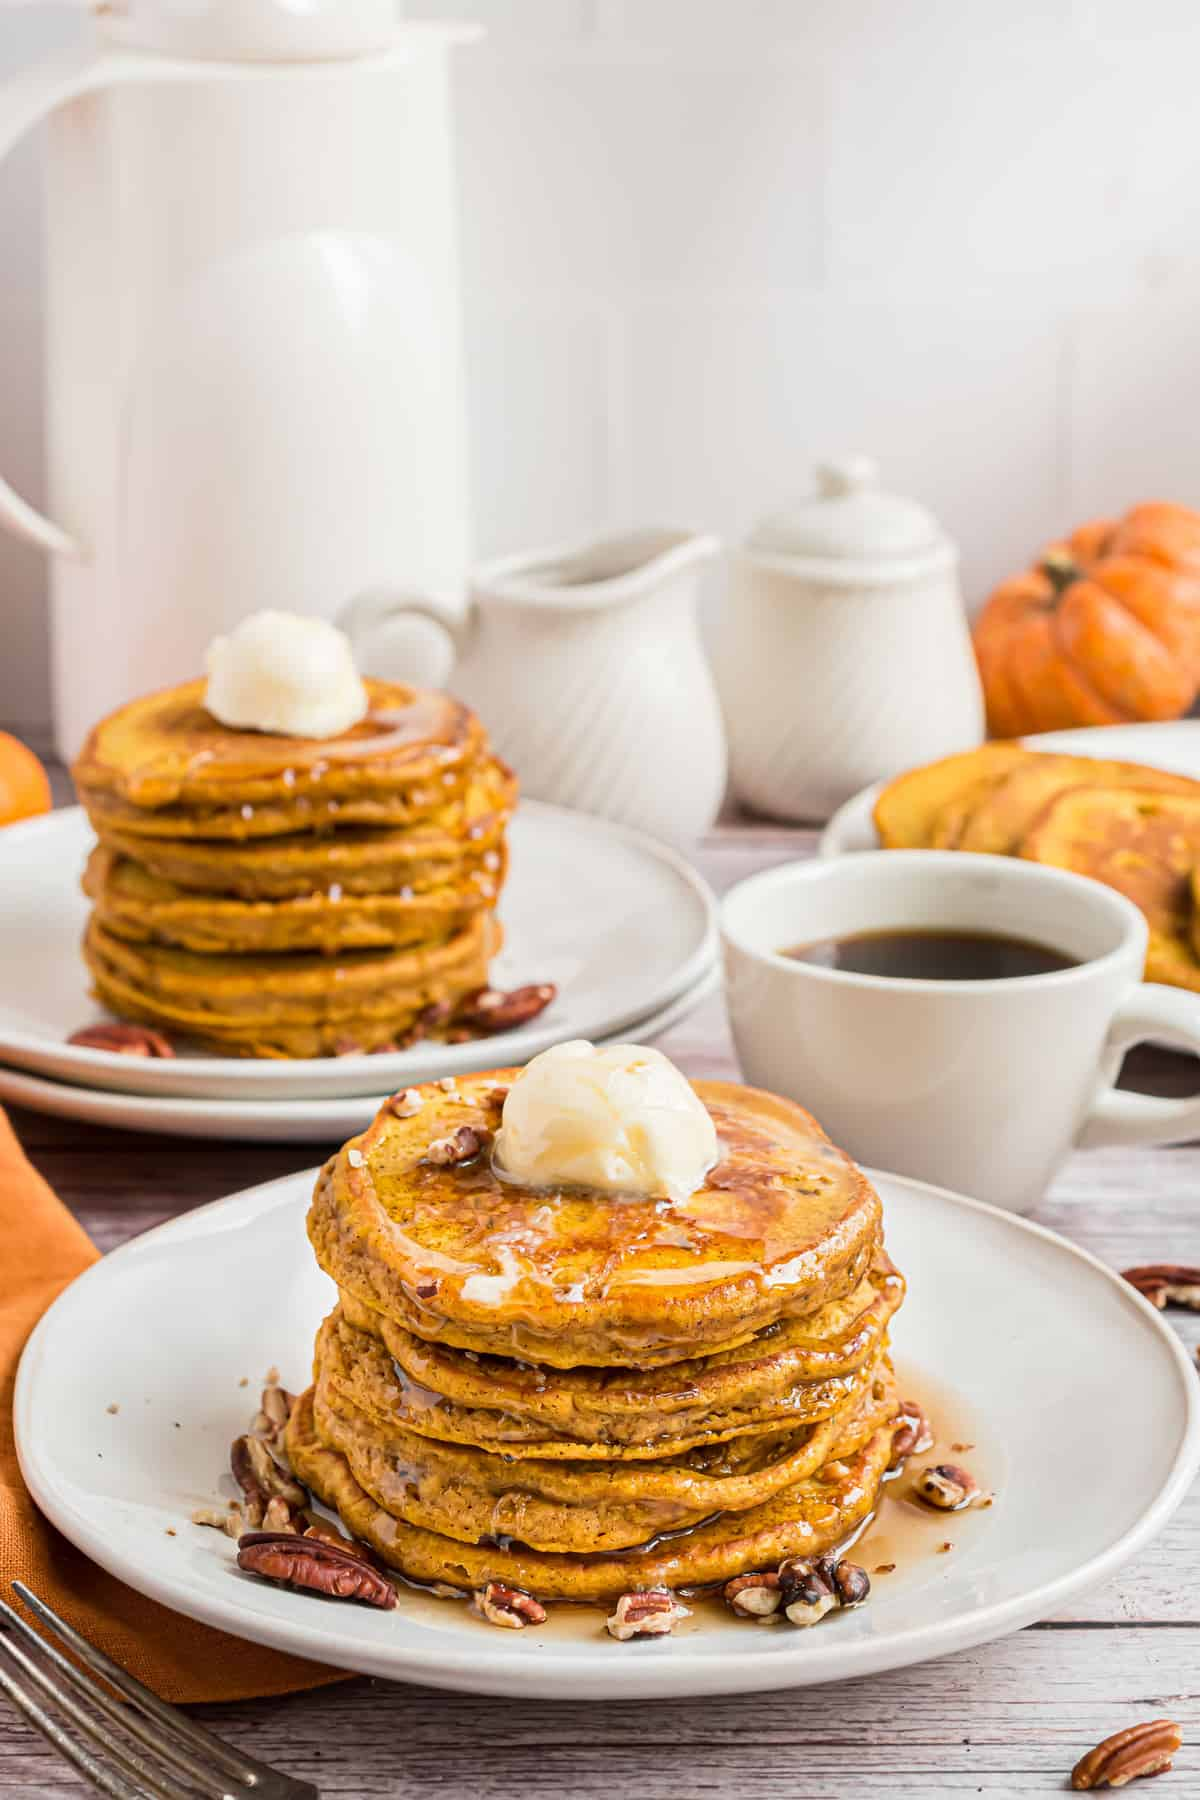 Two plates with large stacks of pumpkin pancakes.